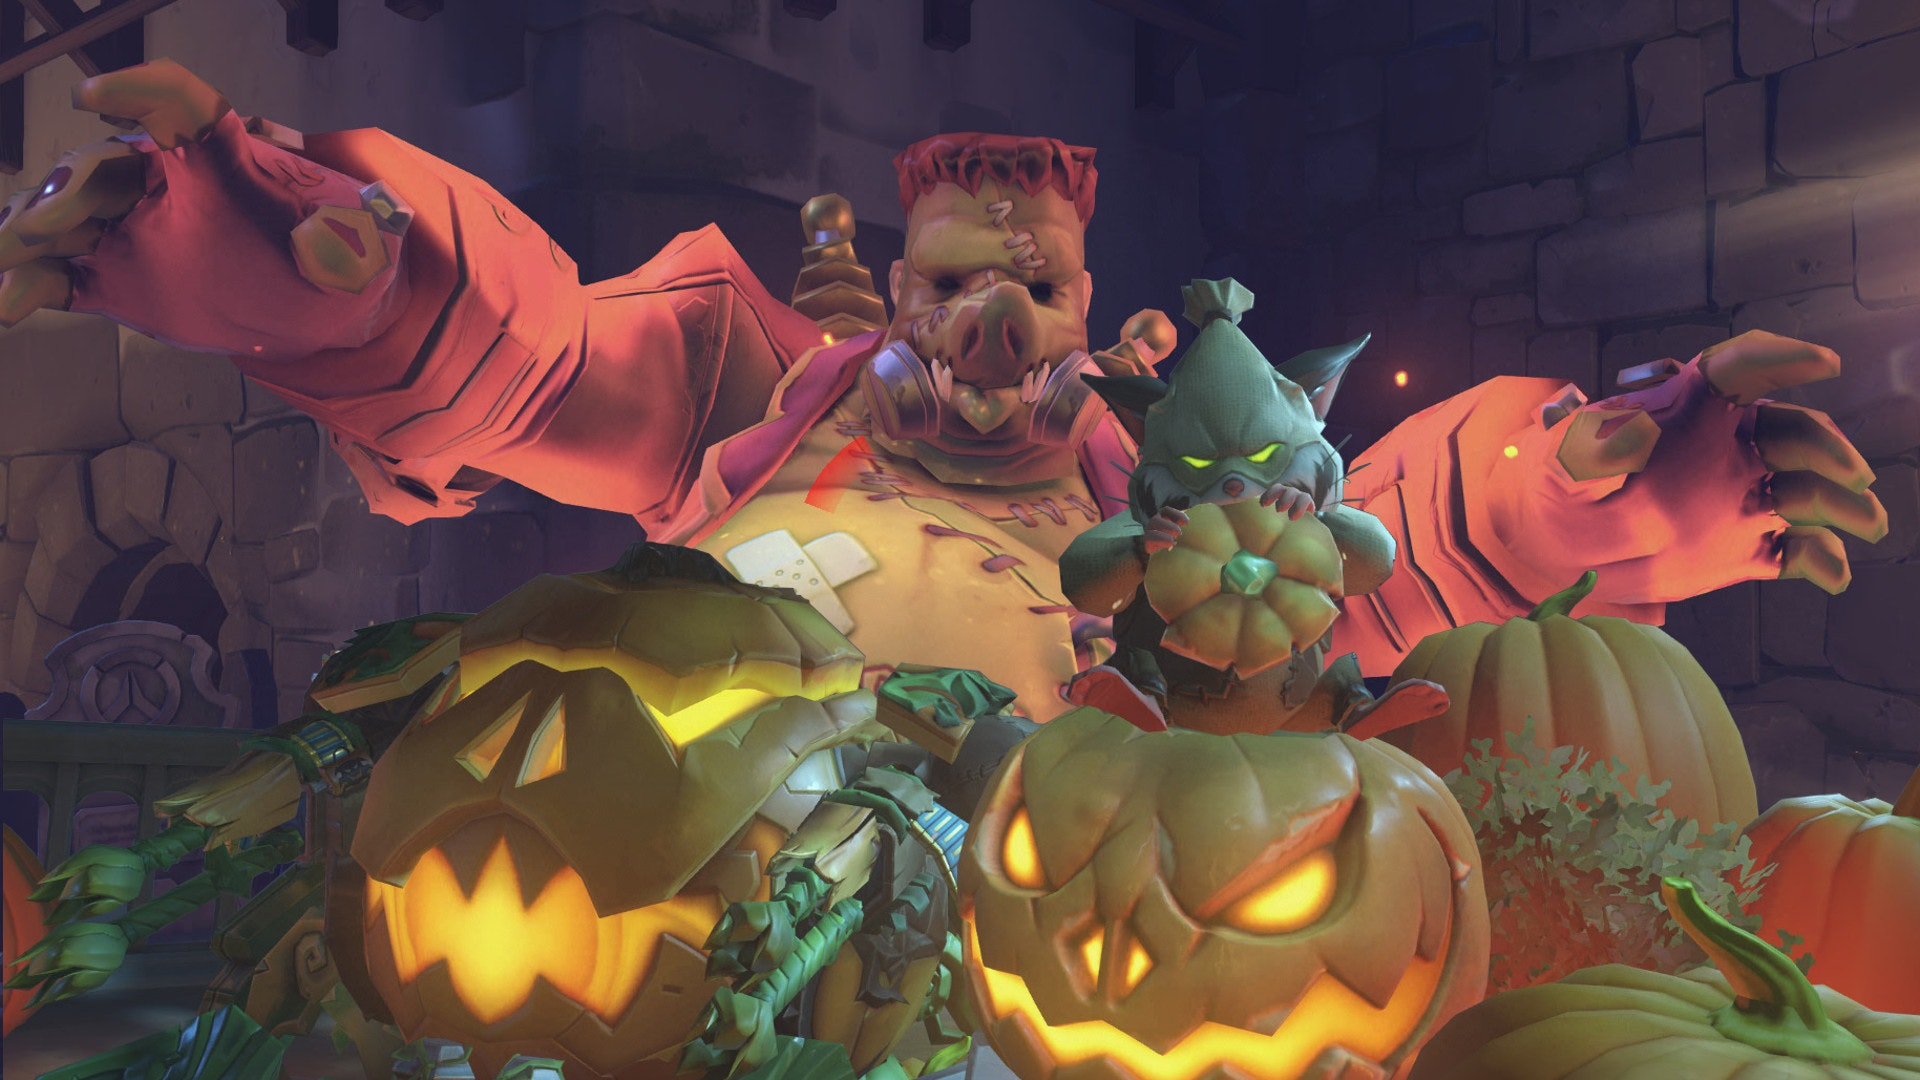 Overwatch Halloween Skins 2020 Date Overwatch' Halloween 2019 skins, event, release date, start time